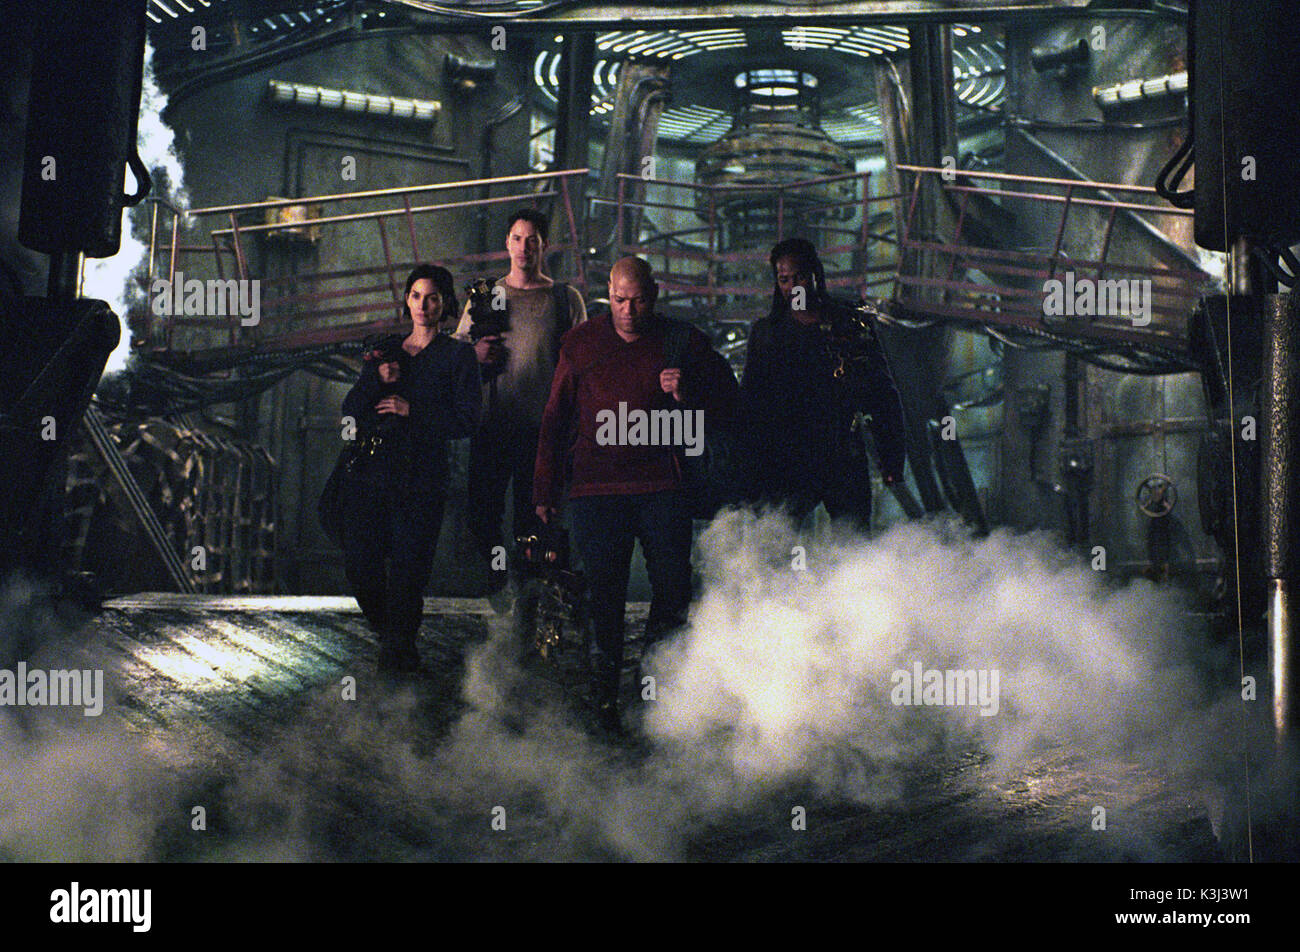 Matrix Movie Film Still Stock Photos Neo Trinity My Amplifier The Reloaded Carrie Anne Moss As Keanu Reeves Laurence